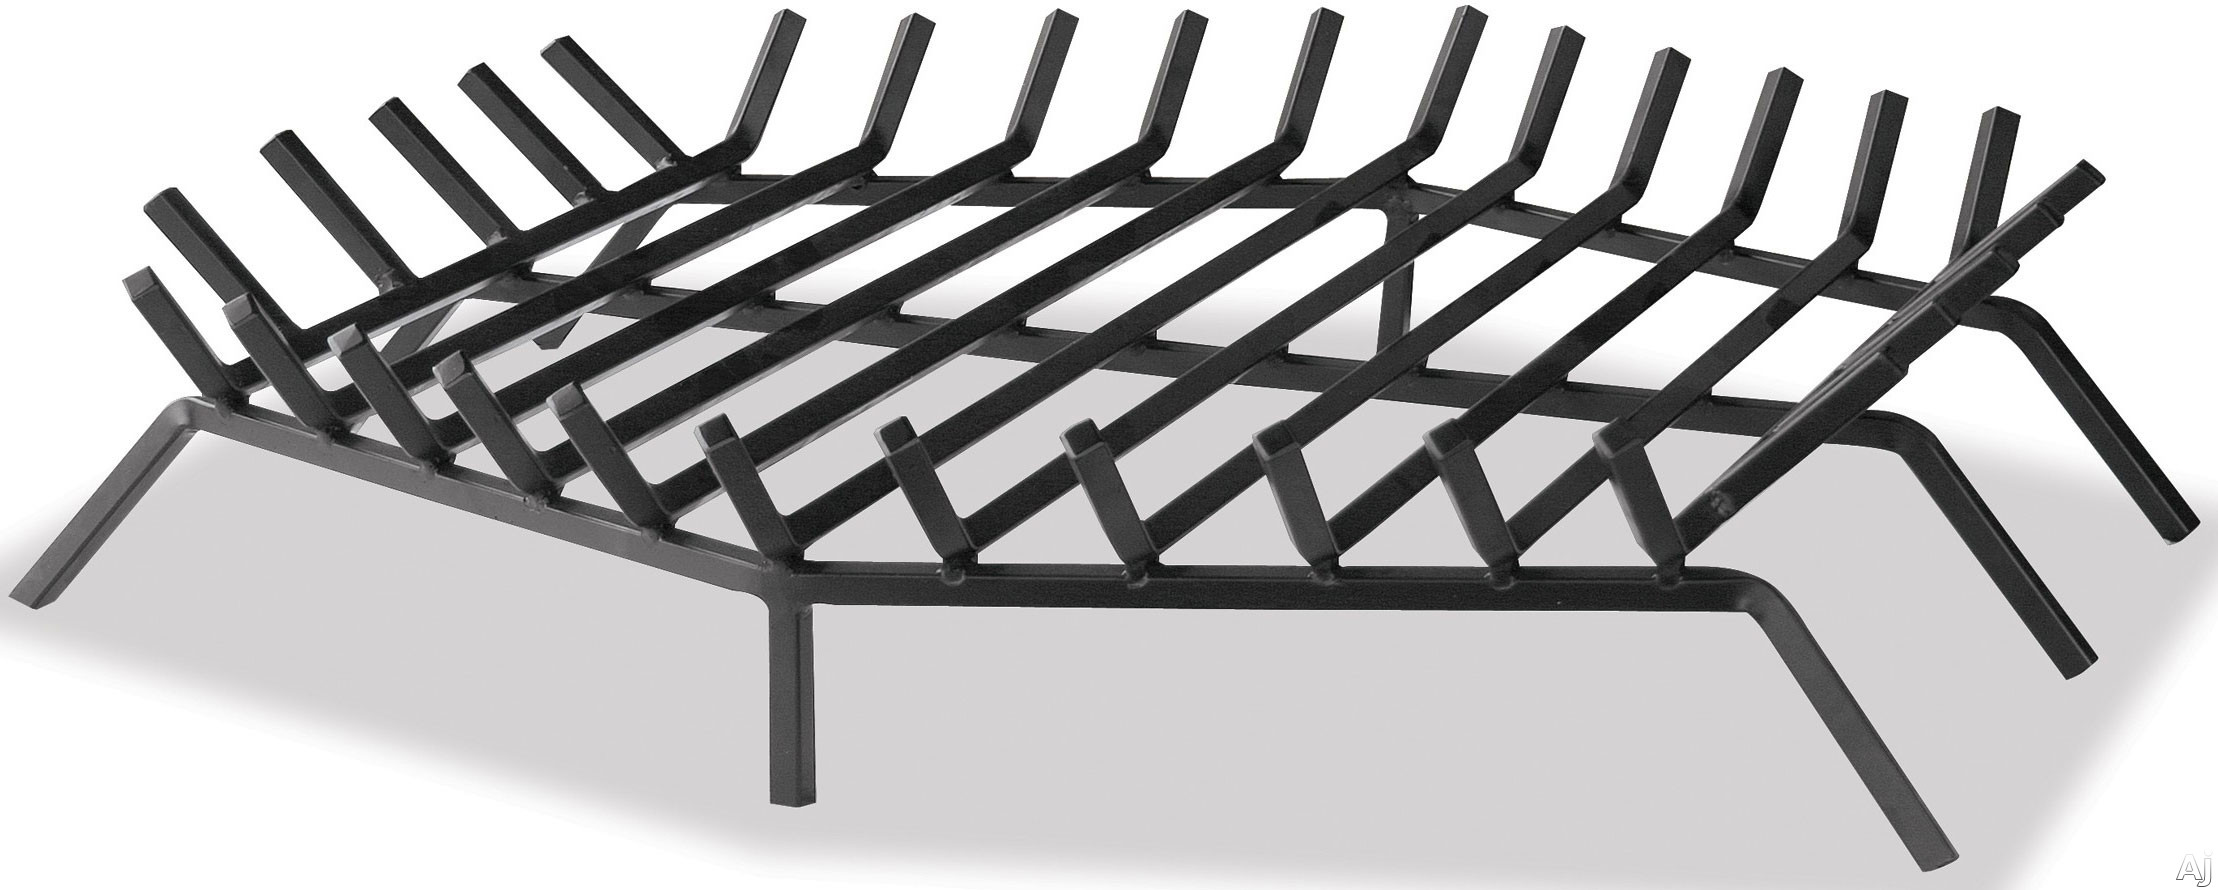 Blue Rhino C1552 Hexagonal Bar Grate for Wood Burning Fireplaces 36